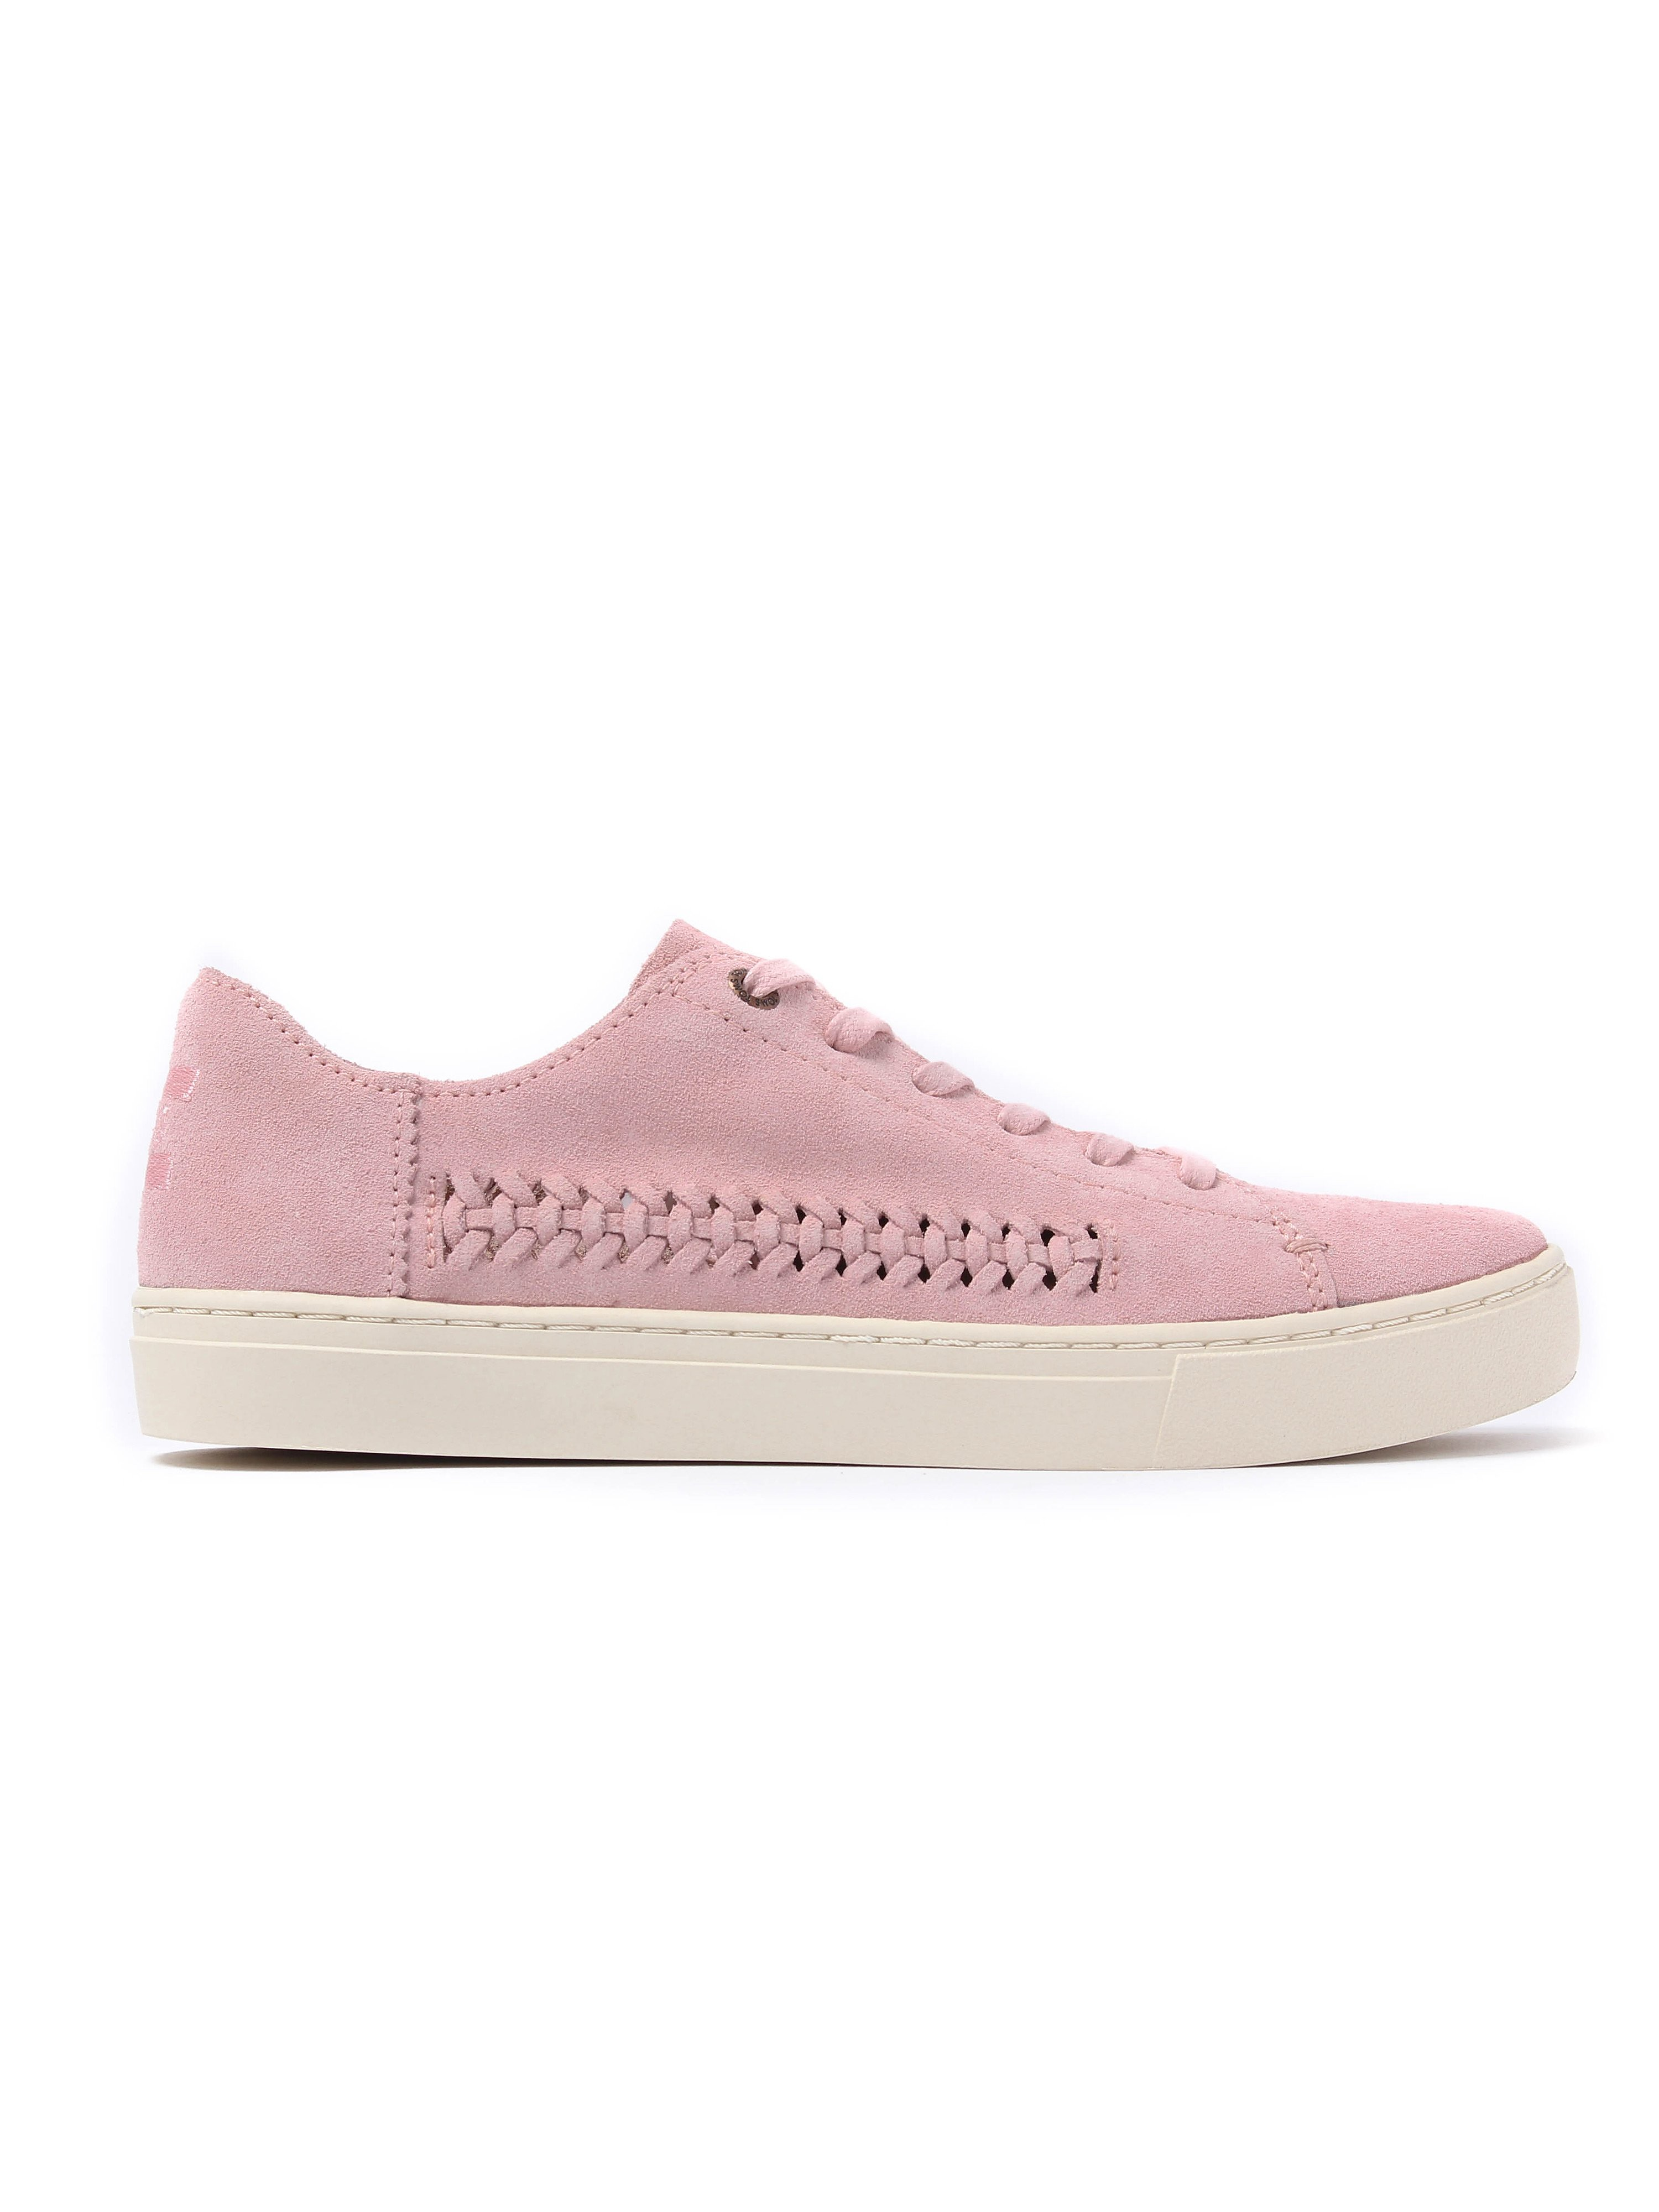 Toms Women's Lenox Deconstructed Suede & Woven Detail Trainers - Pale Pink